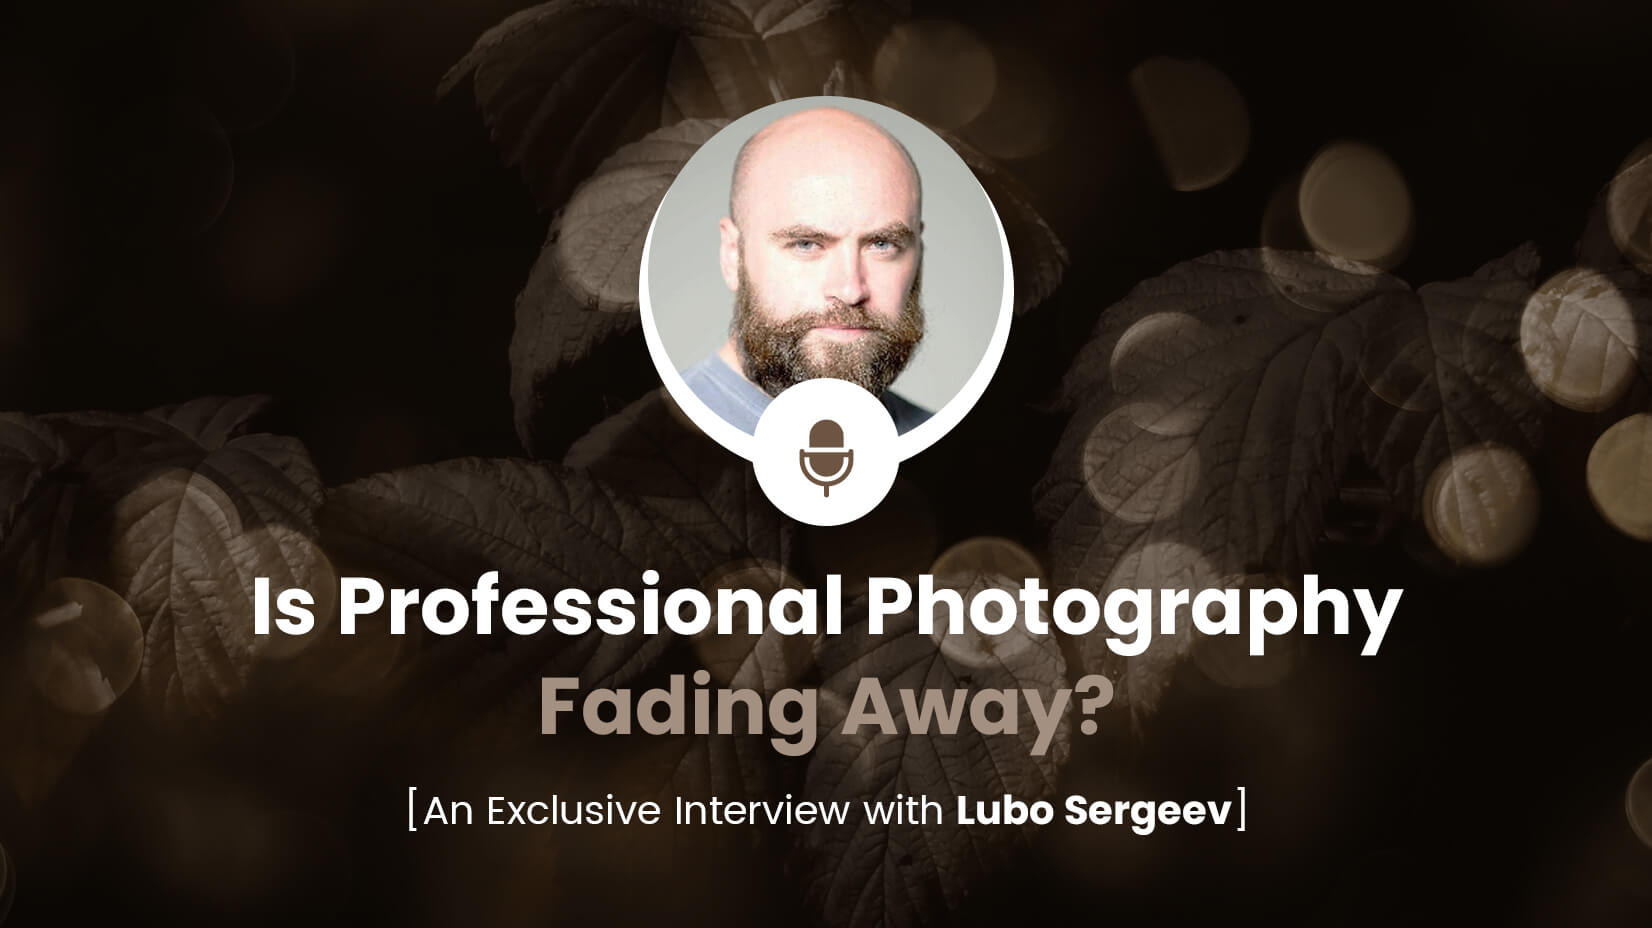 Is Professional Photography Fading Away? An Exclusive Interview with Lubo Sergeev